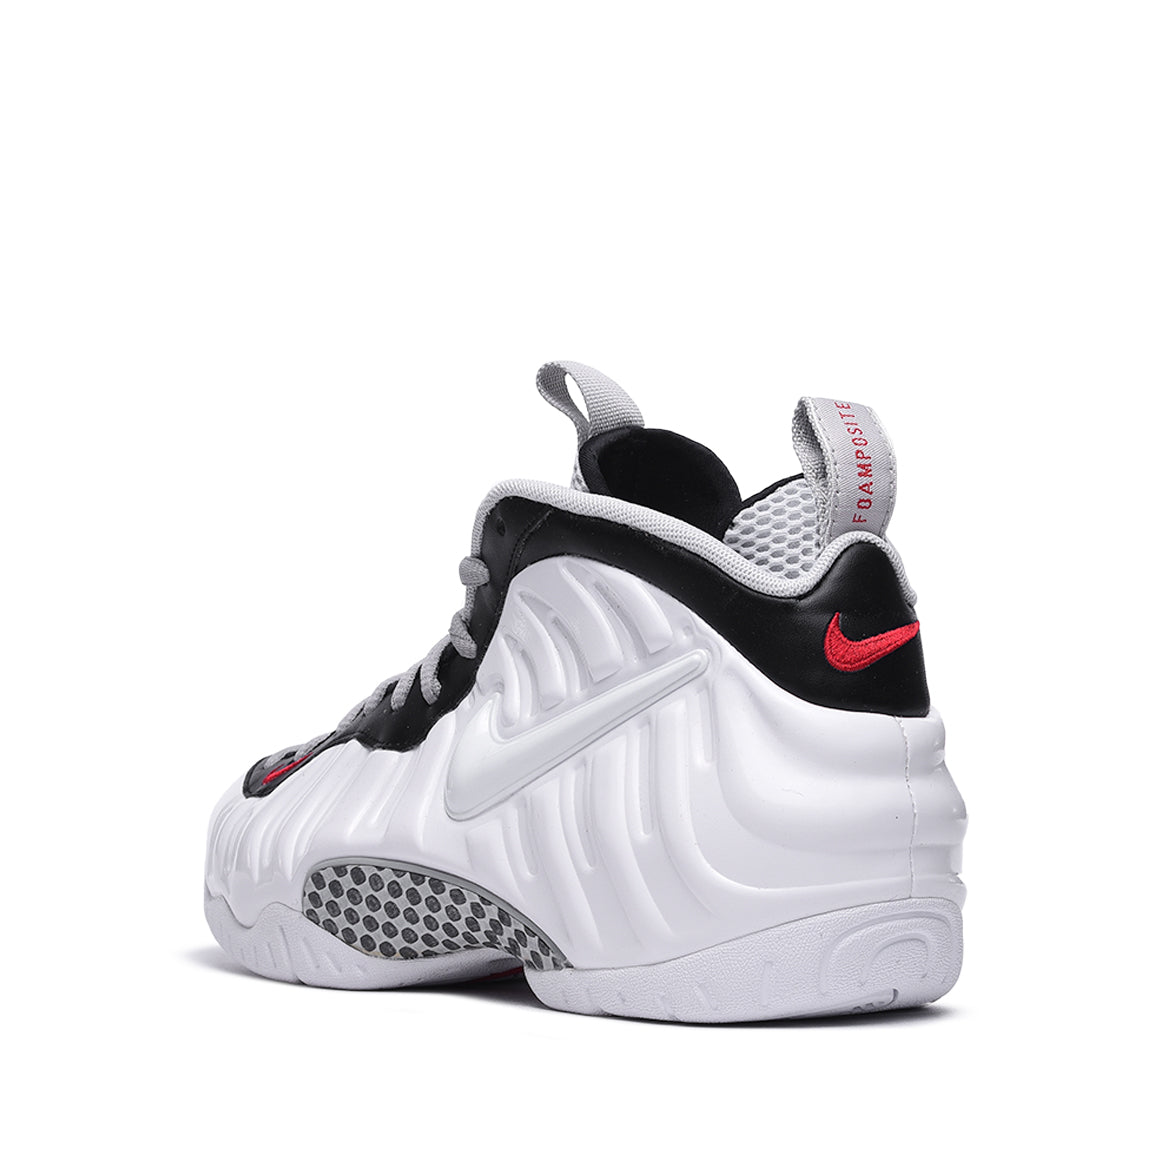 AIR FOAMPOSITE PRO - WHITE / BLACK / UNIVERSITY RED